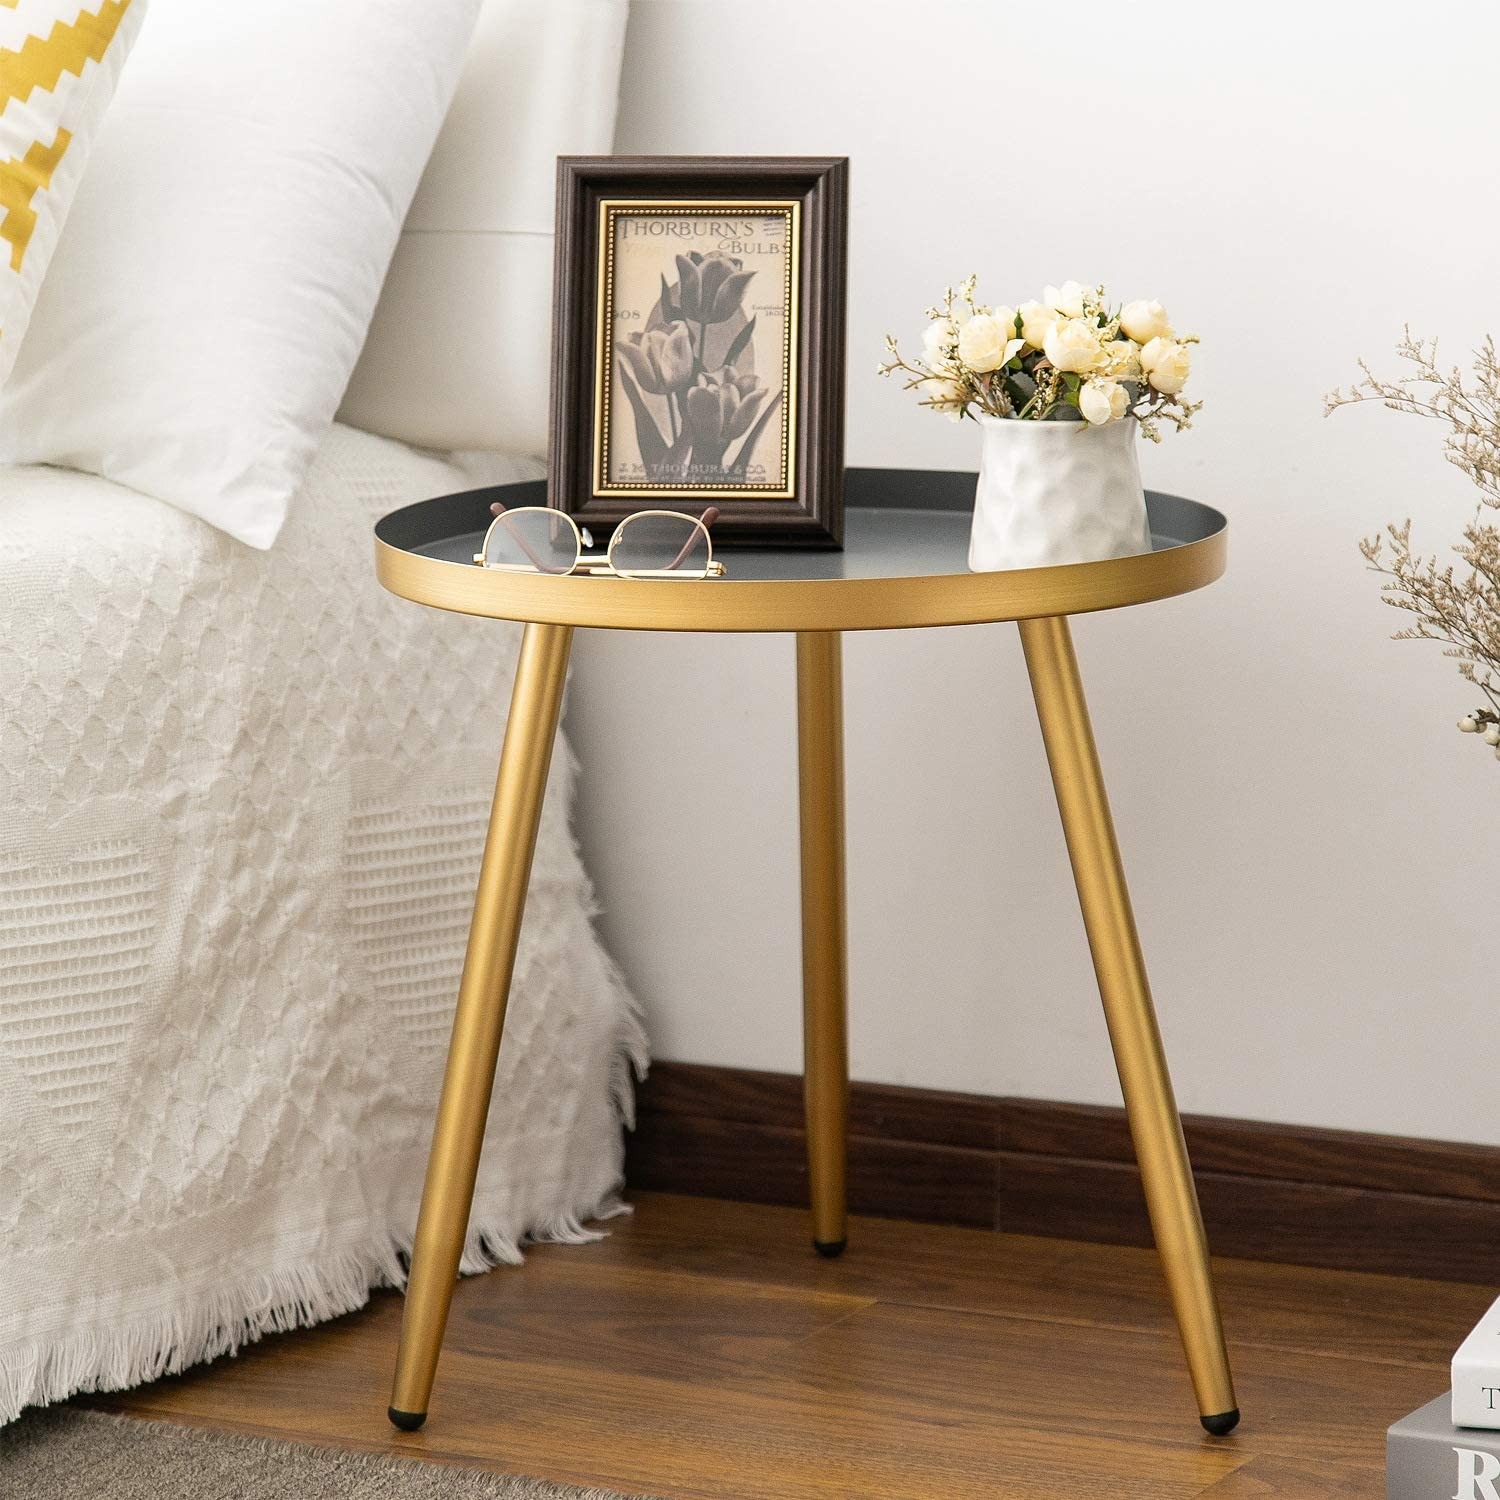 Round Side Table Metal End Table Nightstand Small Tables For Living Room Accent Tables Cheap Side Table For Small Spaces Gold Gray By Aojezor Kitchen Dining